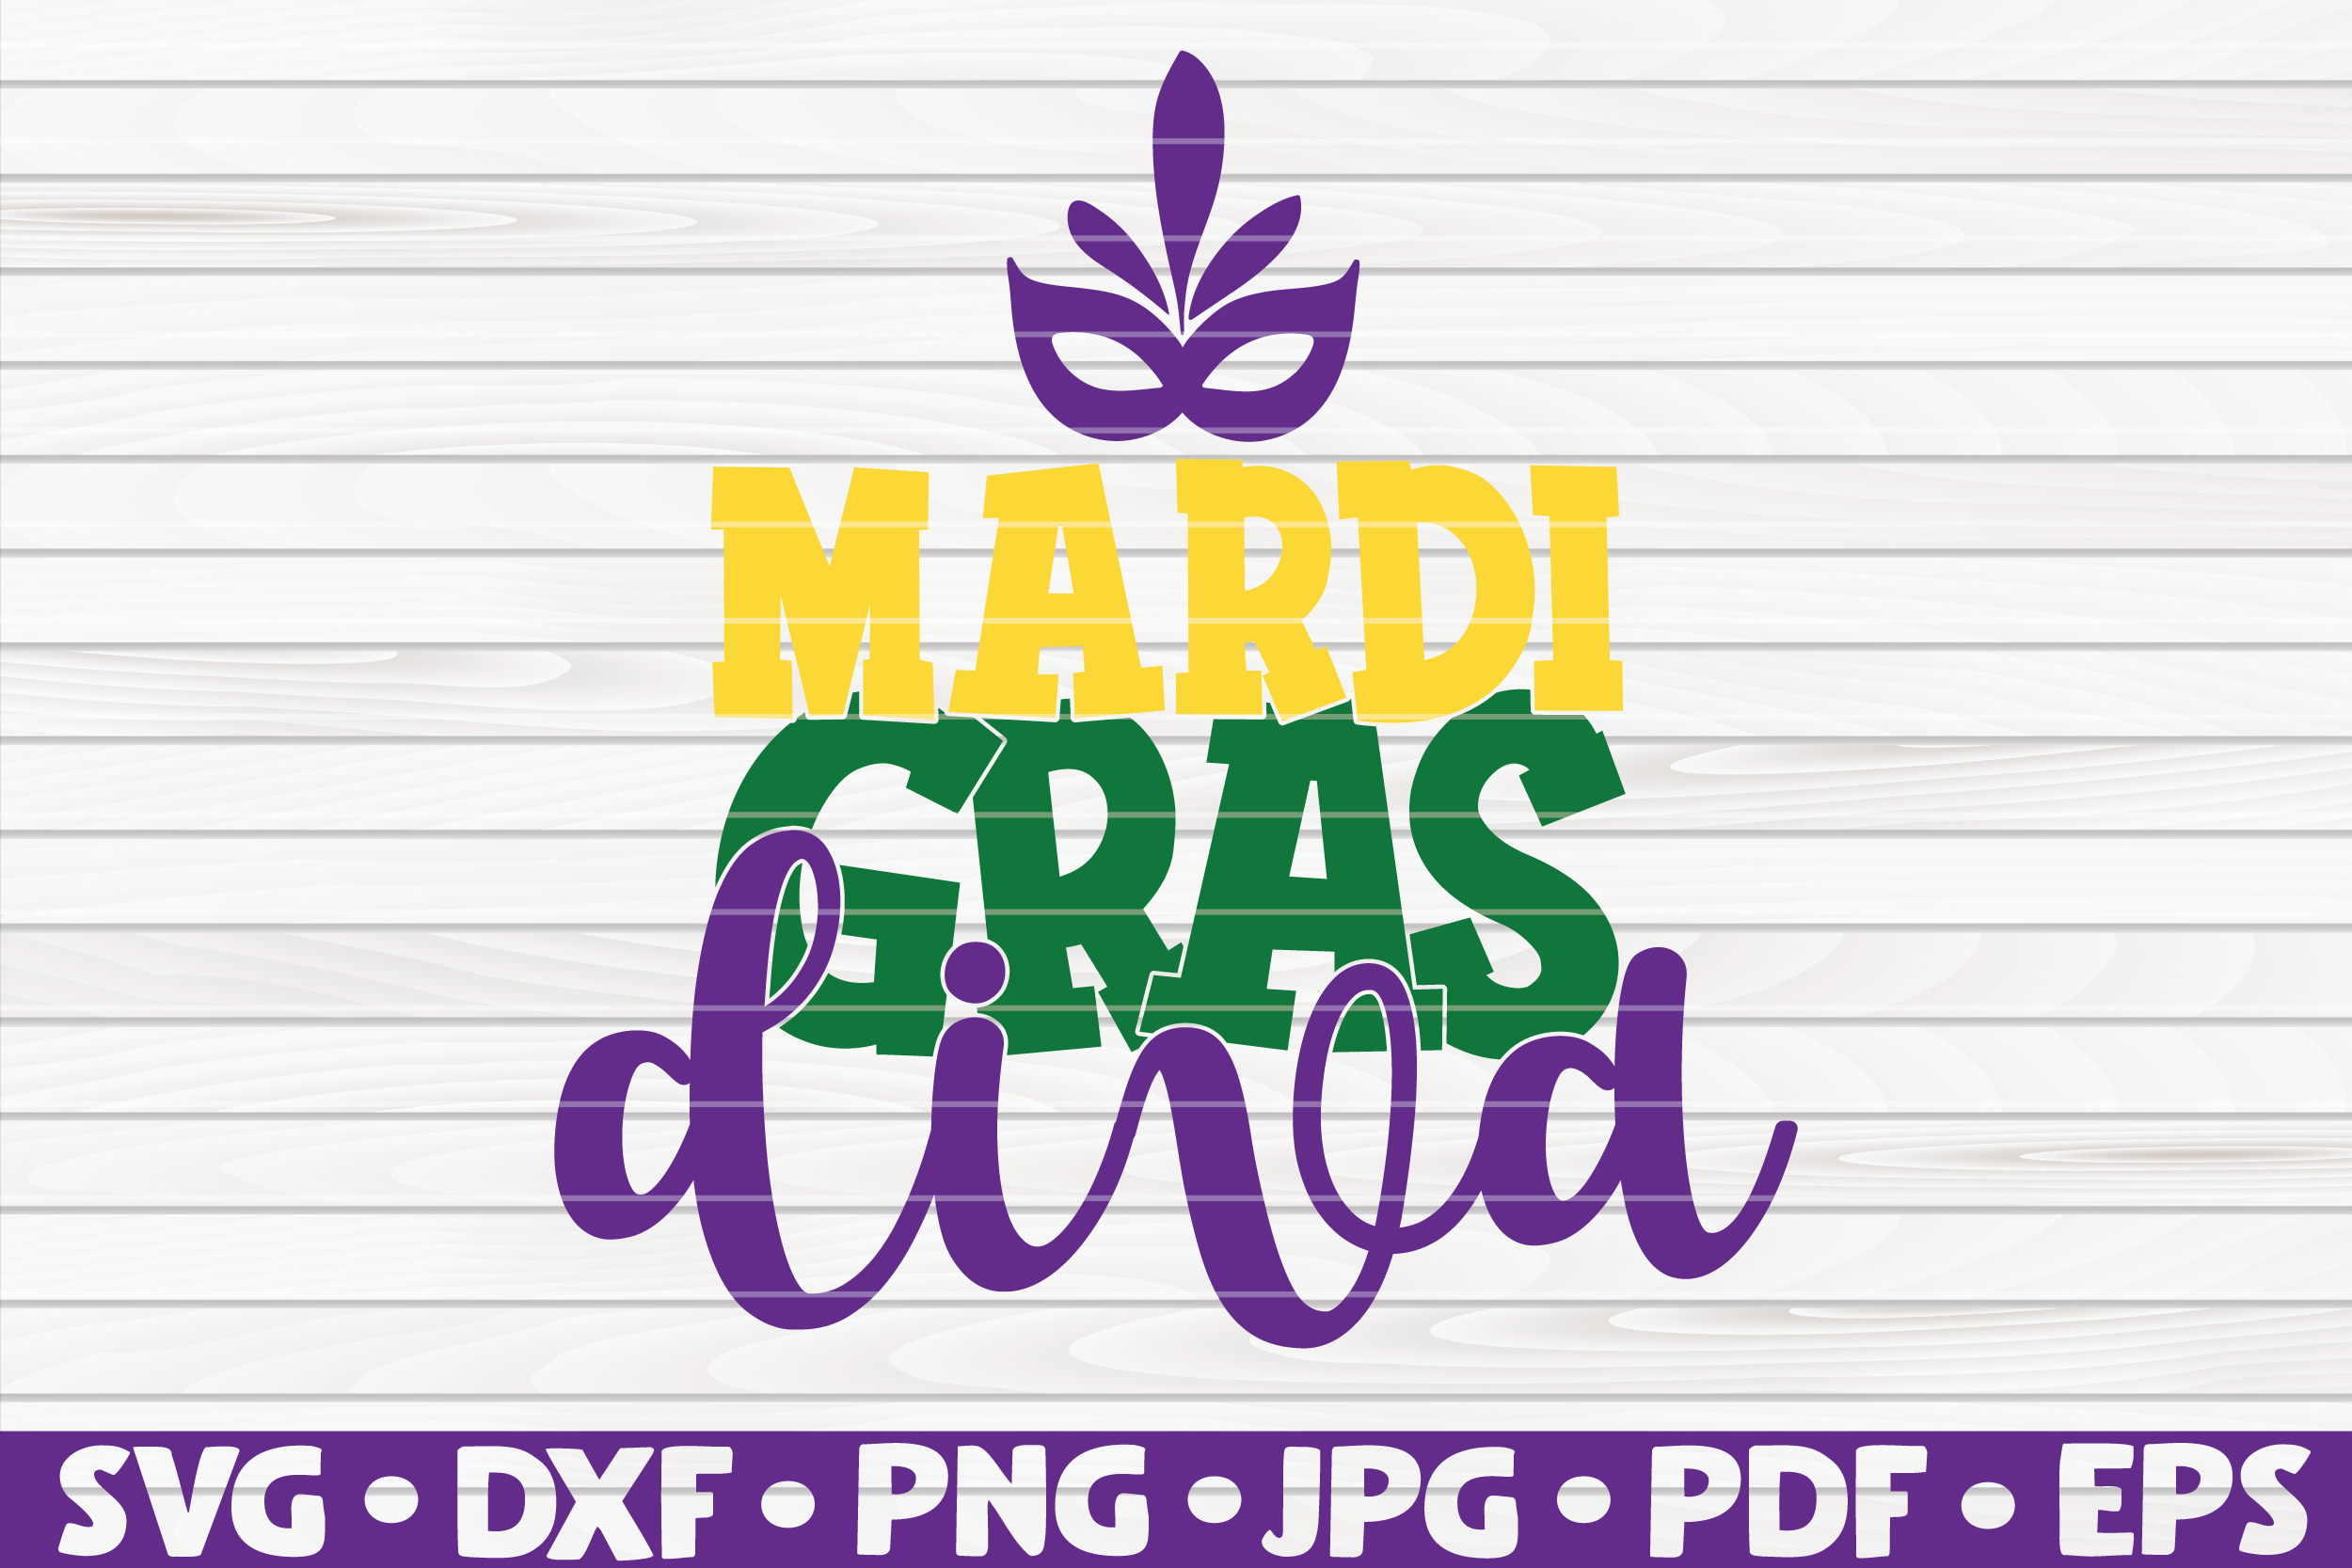 Download Free Mardi Gras Diva Graphic By Mihaibadea95 Creative Fabrica for Cricut Explore, Silhouette and other cutting machines.